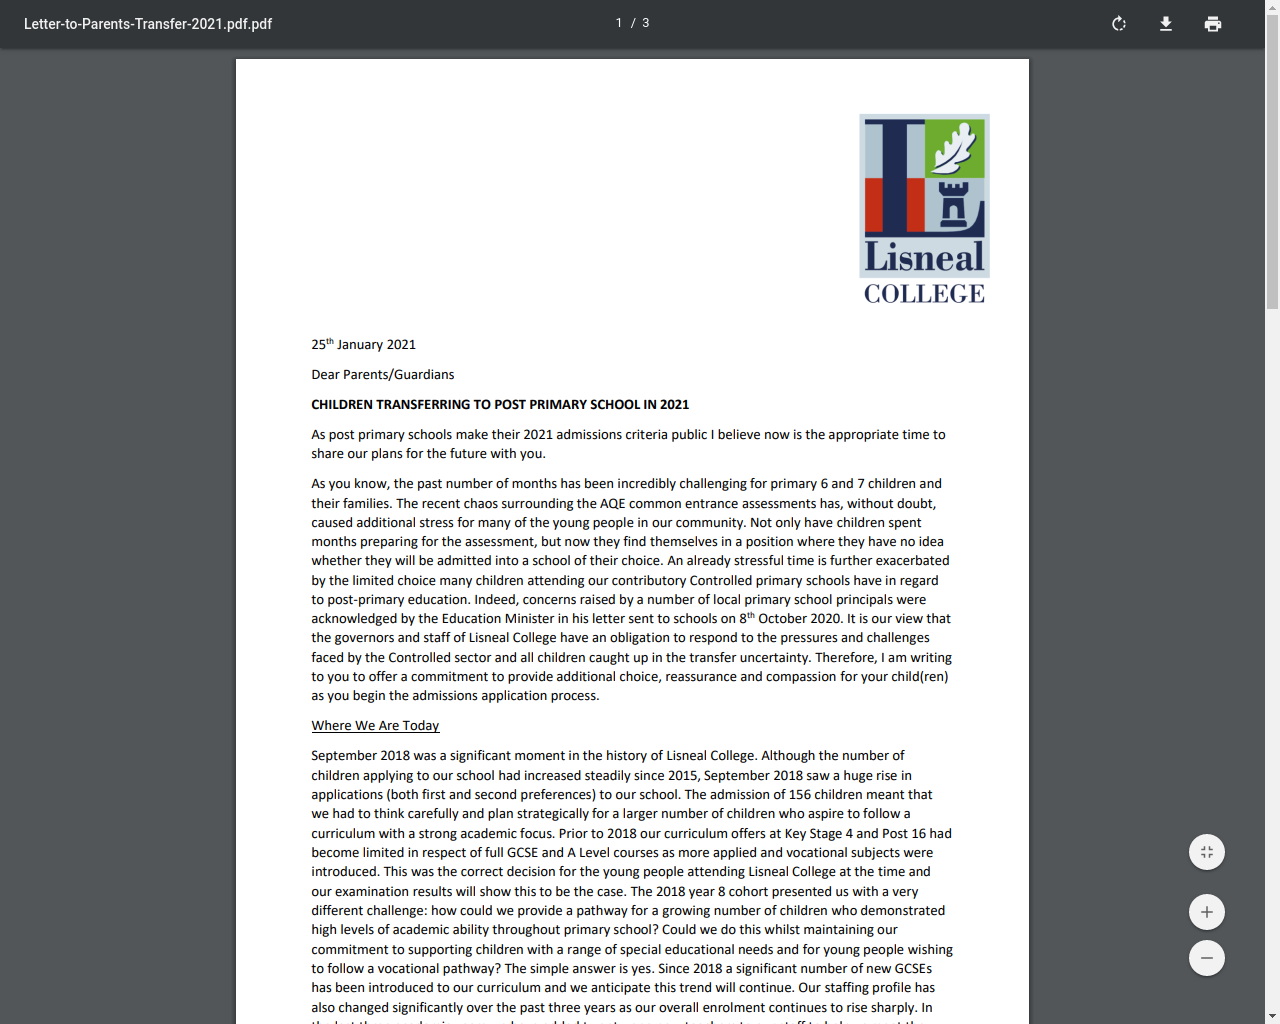 Lisneal College Letter to Parents Transferring to Post Primary School 2021